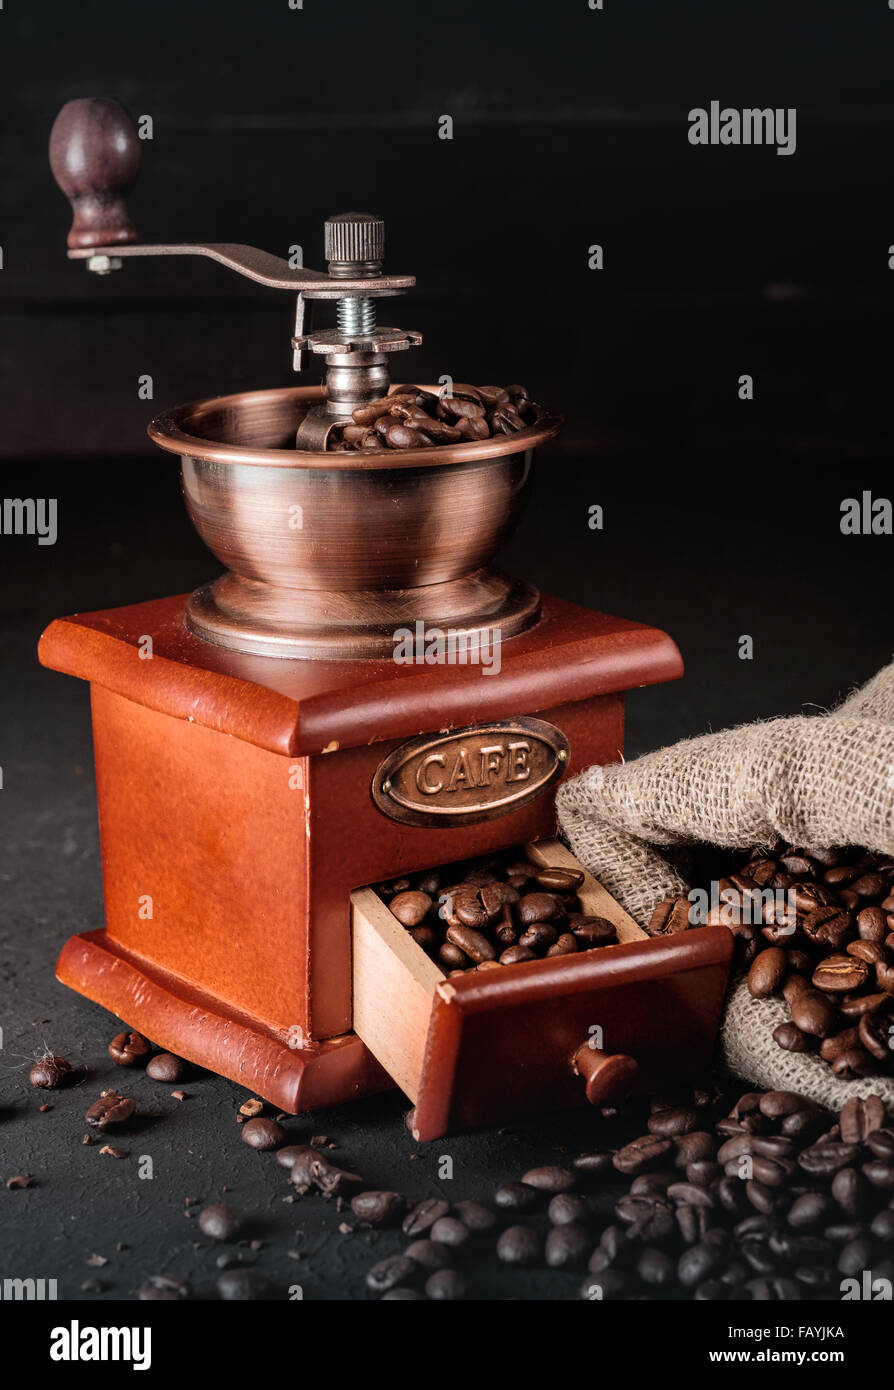 Coffee beans in jute bags with coffee grinder on dark wooden background. - Stock Image